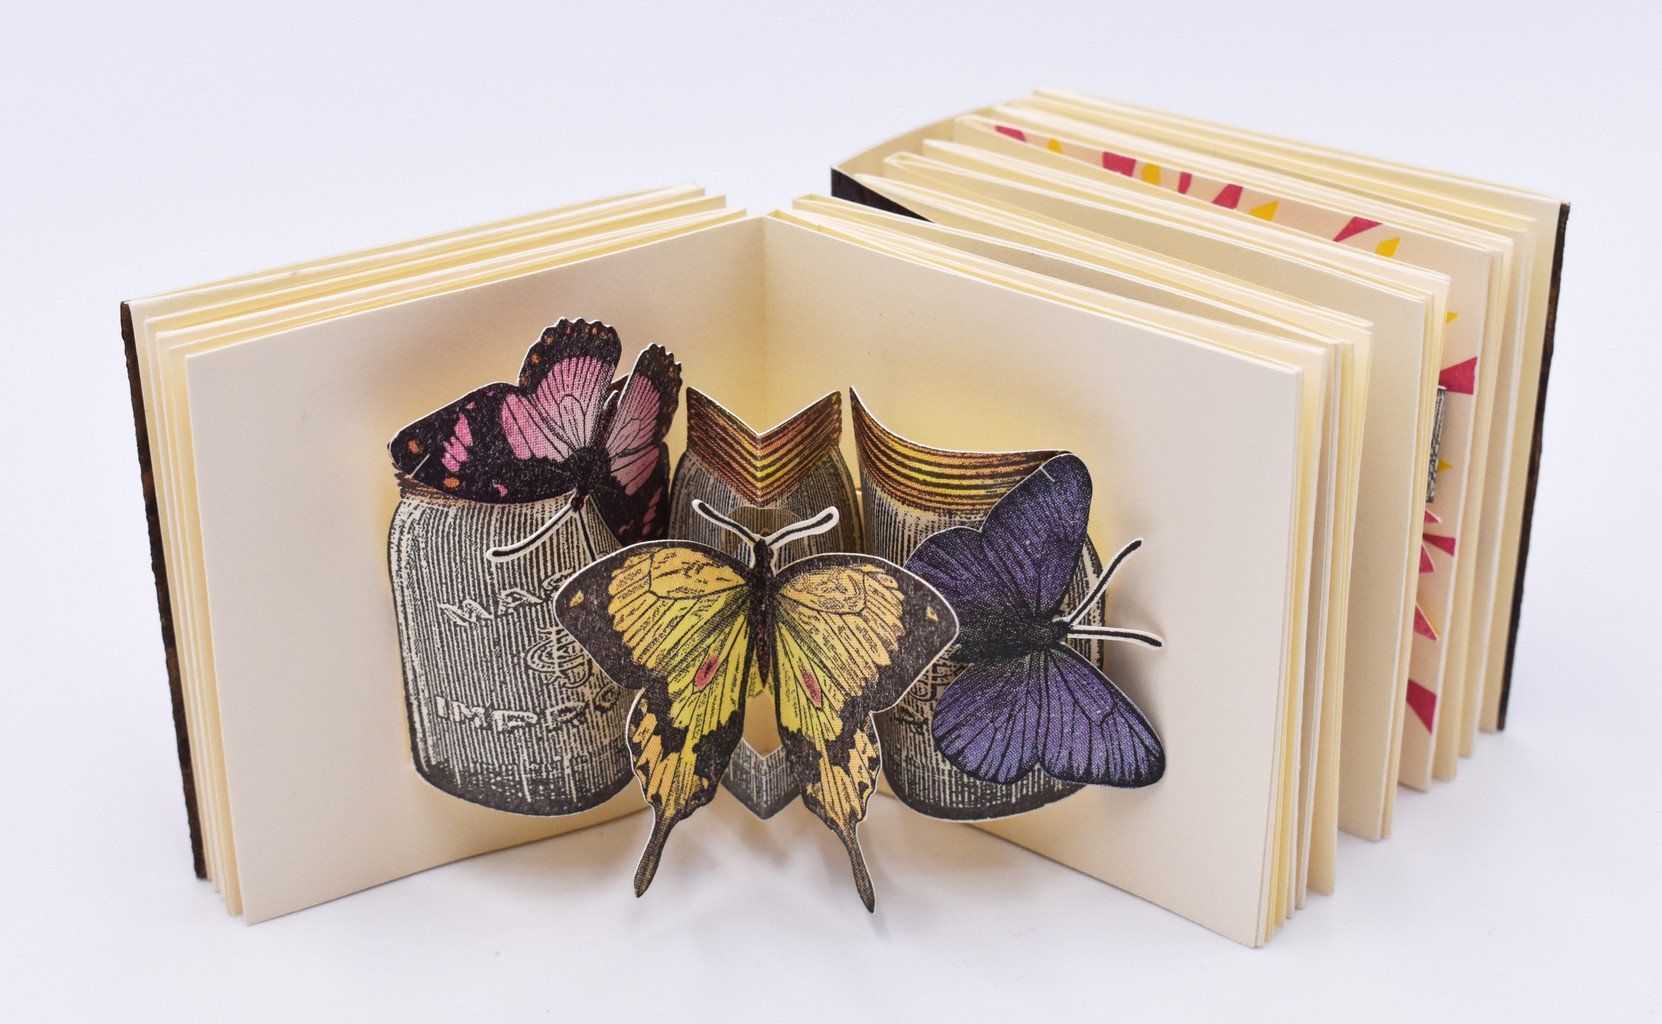 Image of folded accordion book with butterfly pop-up